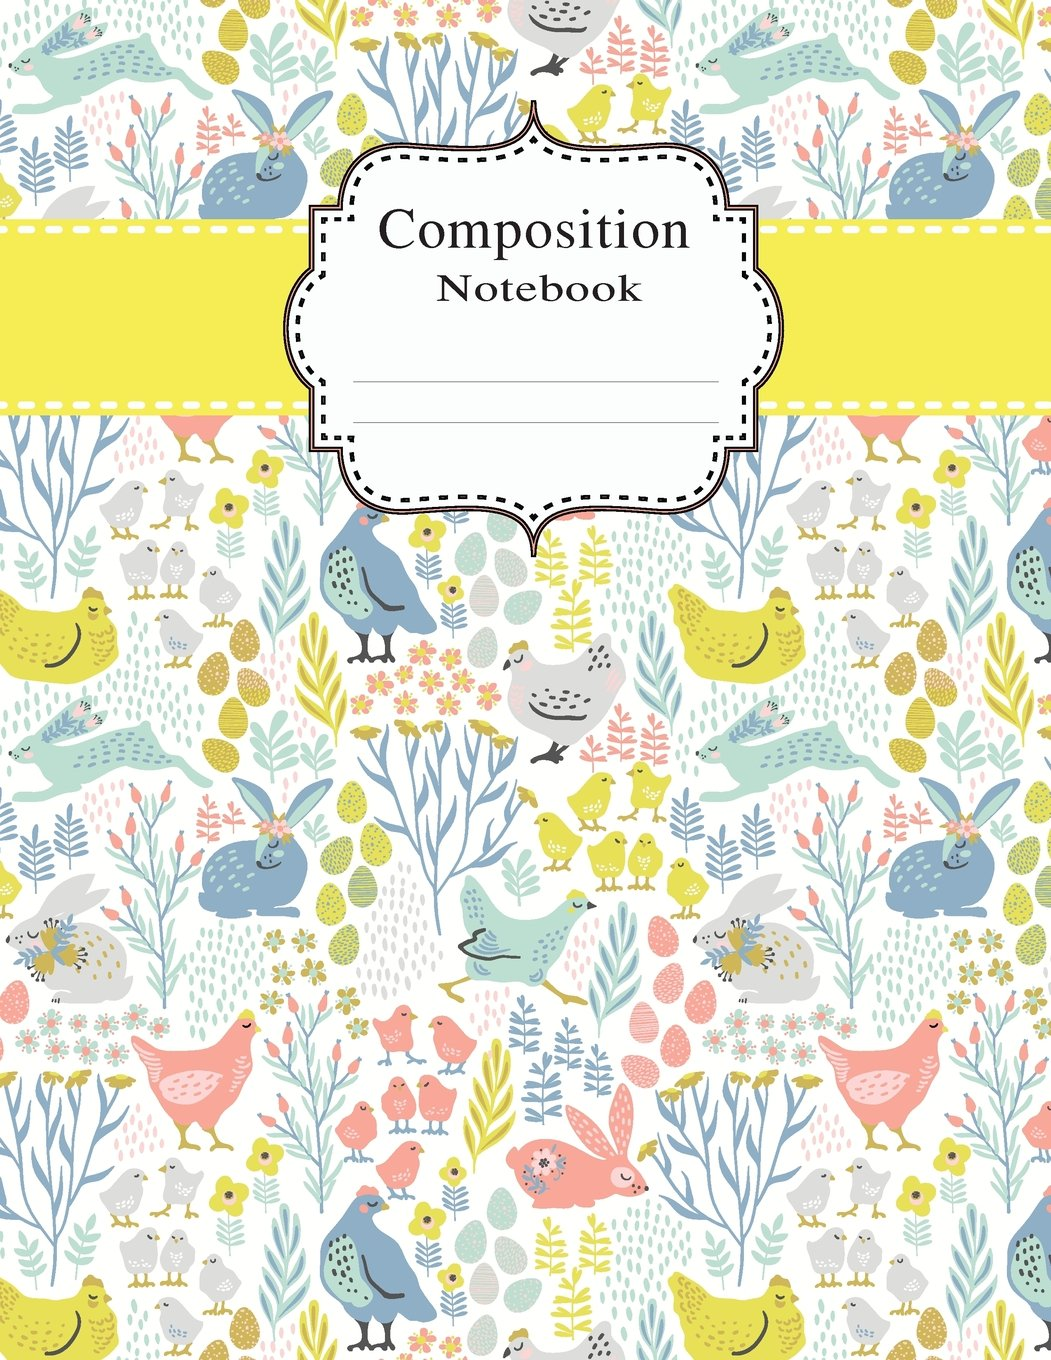 Composition Notebook: School College Ruled Notebooks, Easter Bunny Rabbits (Office Supplies Notebook) (Volume 1)